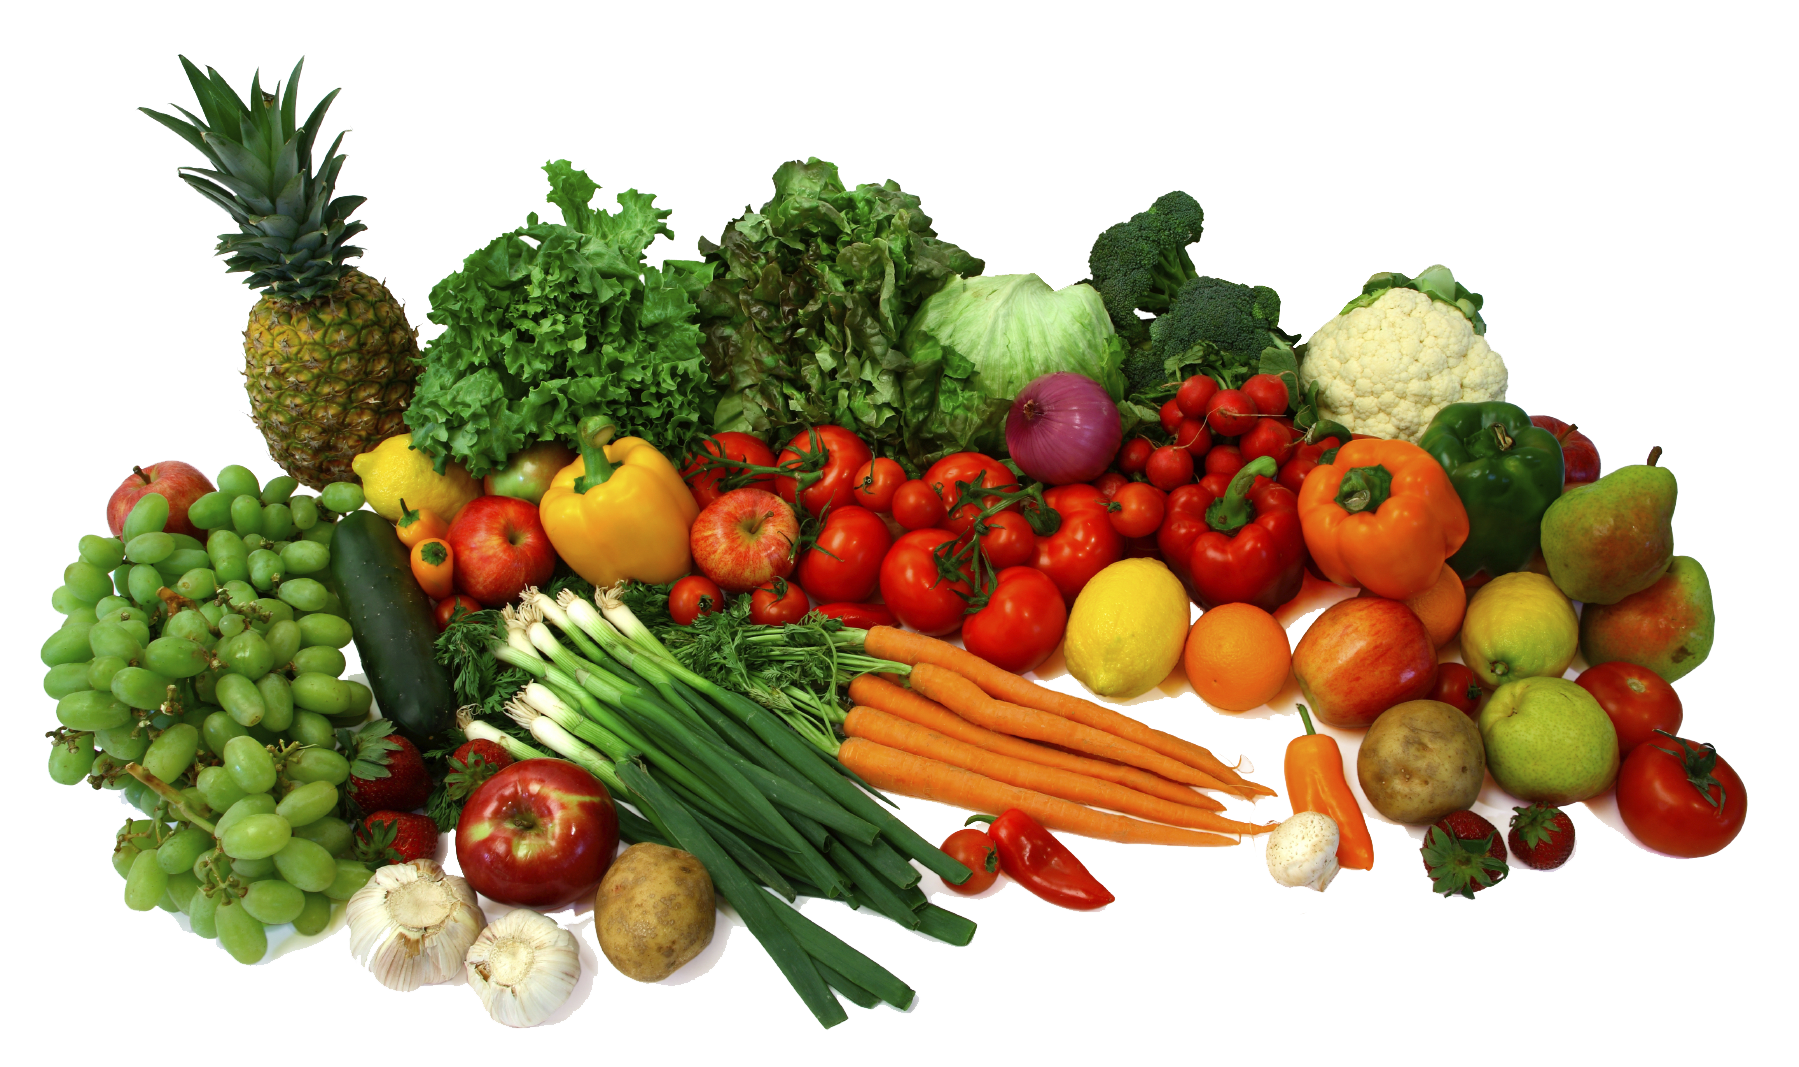 Vegetable PNG Transparent Image - Vegetable PNG